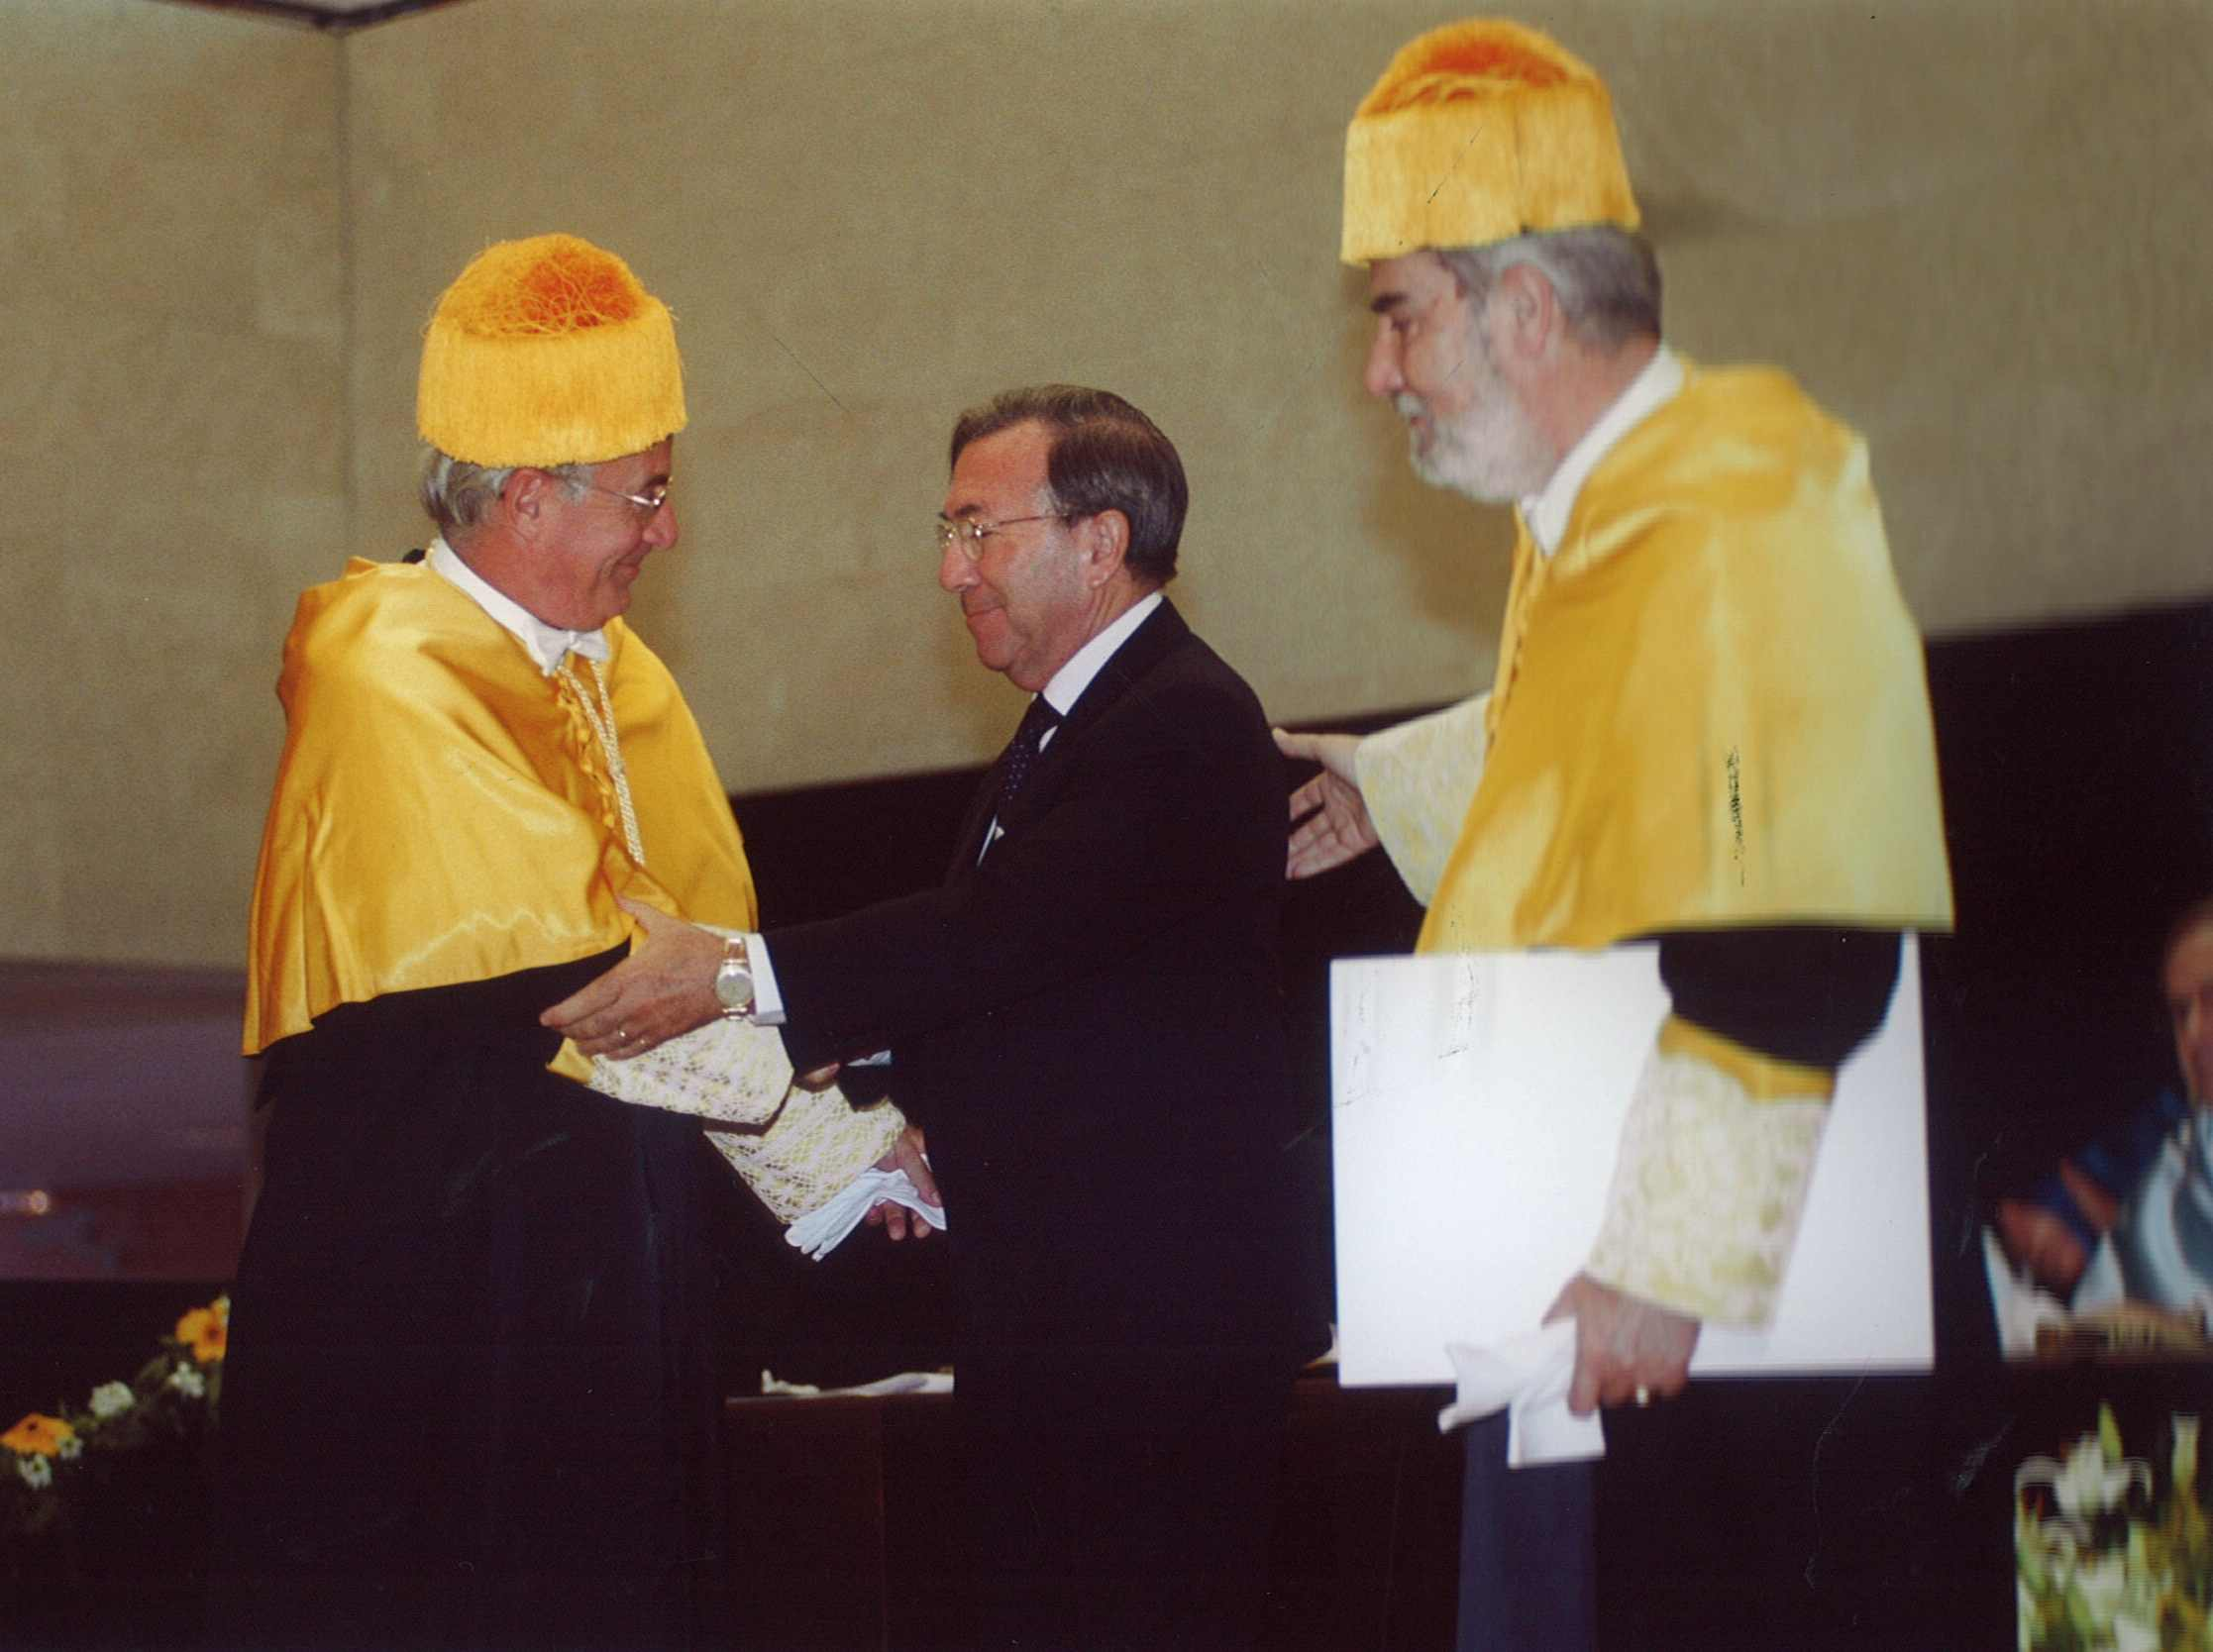 14-dhc-mayor-zaragoza.jpg